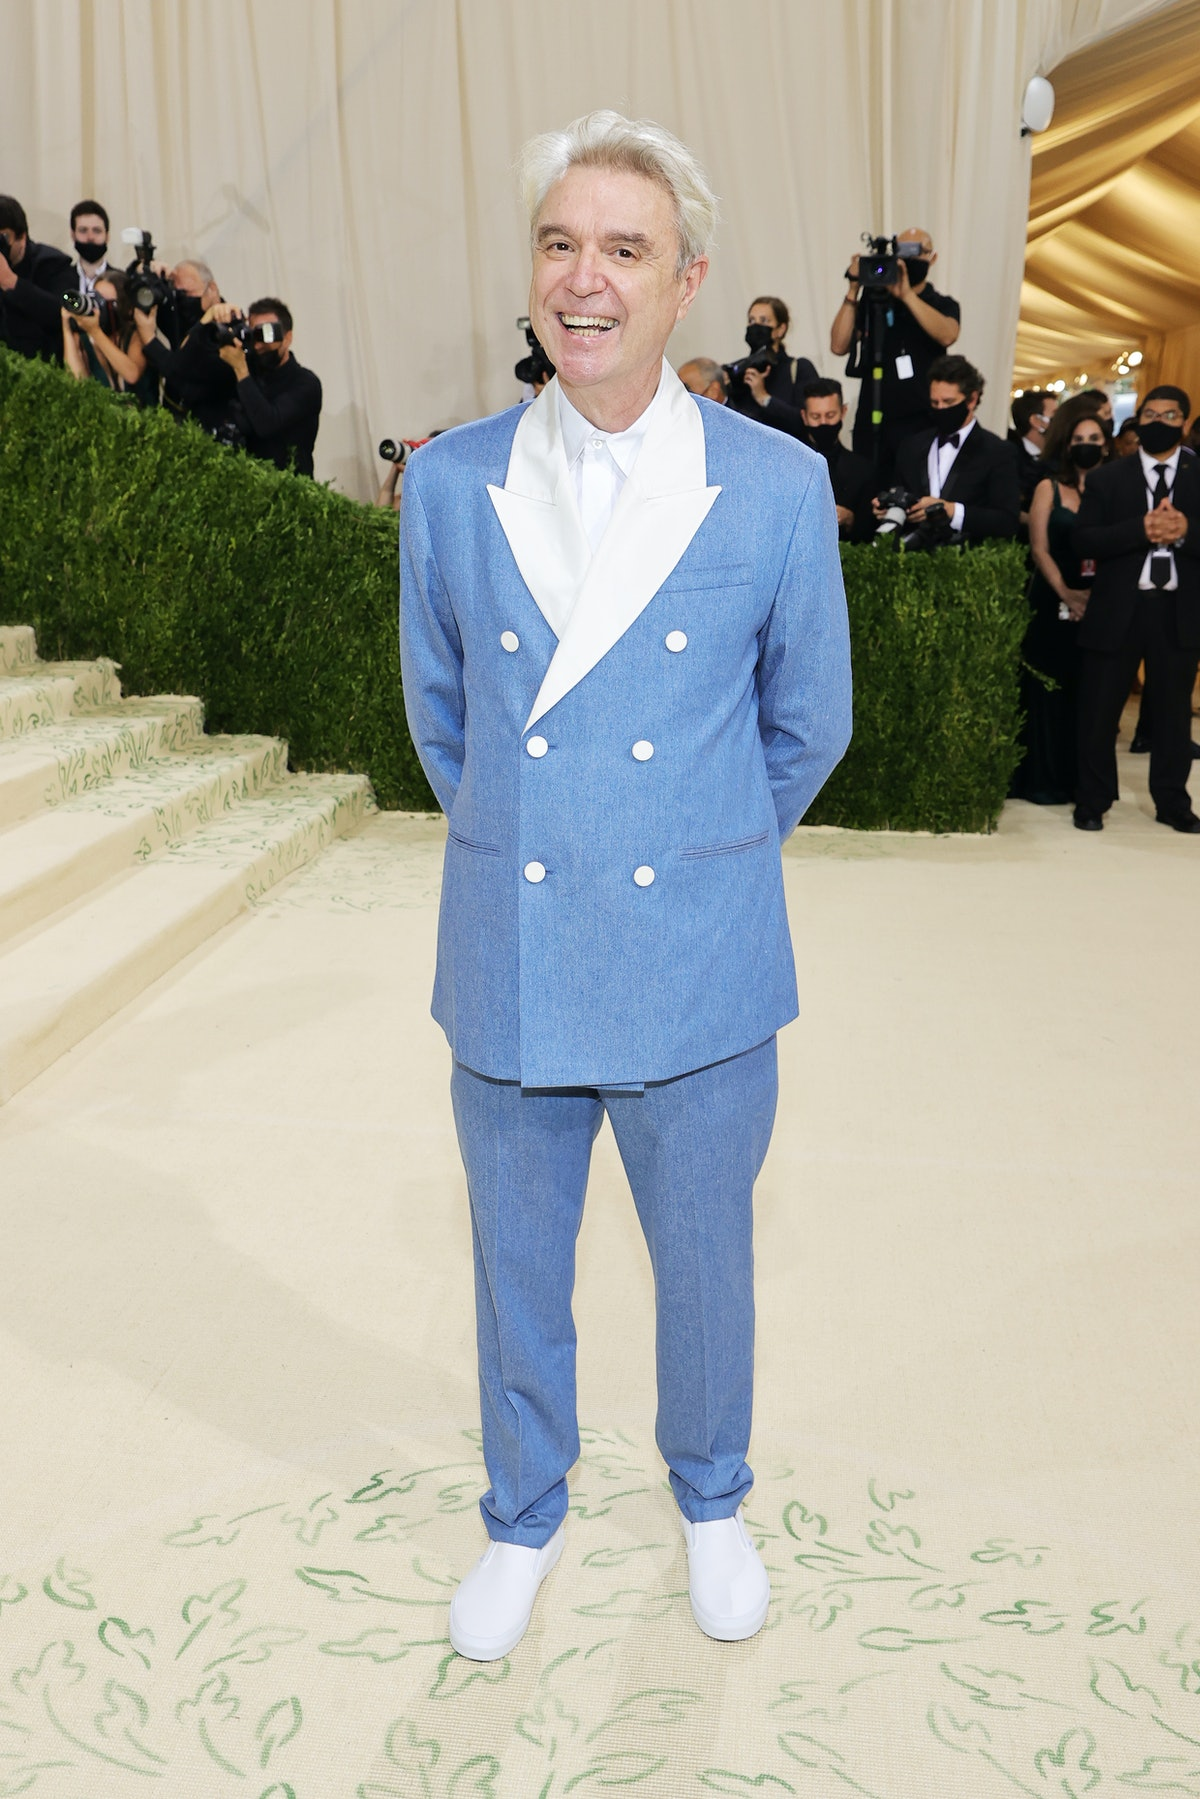 David Byrne attends The 2021 Met Gala Celebrating In America: A Lexicon Of Fashion at Metropolitan M...